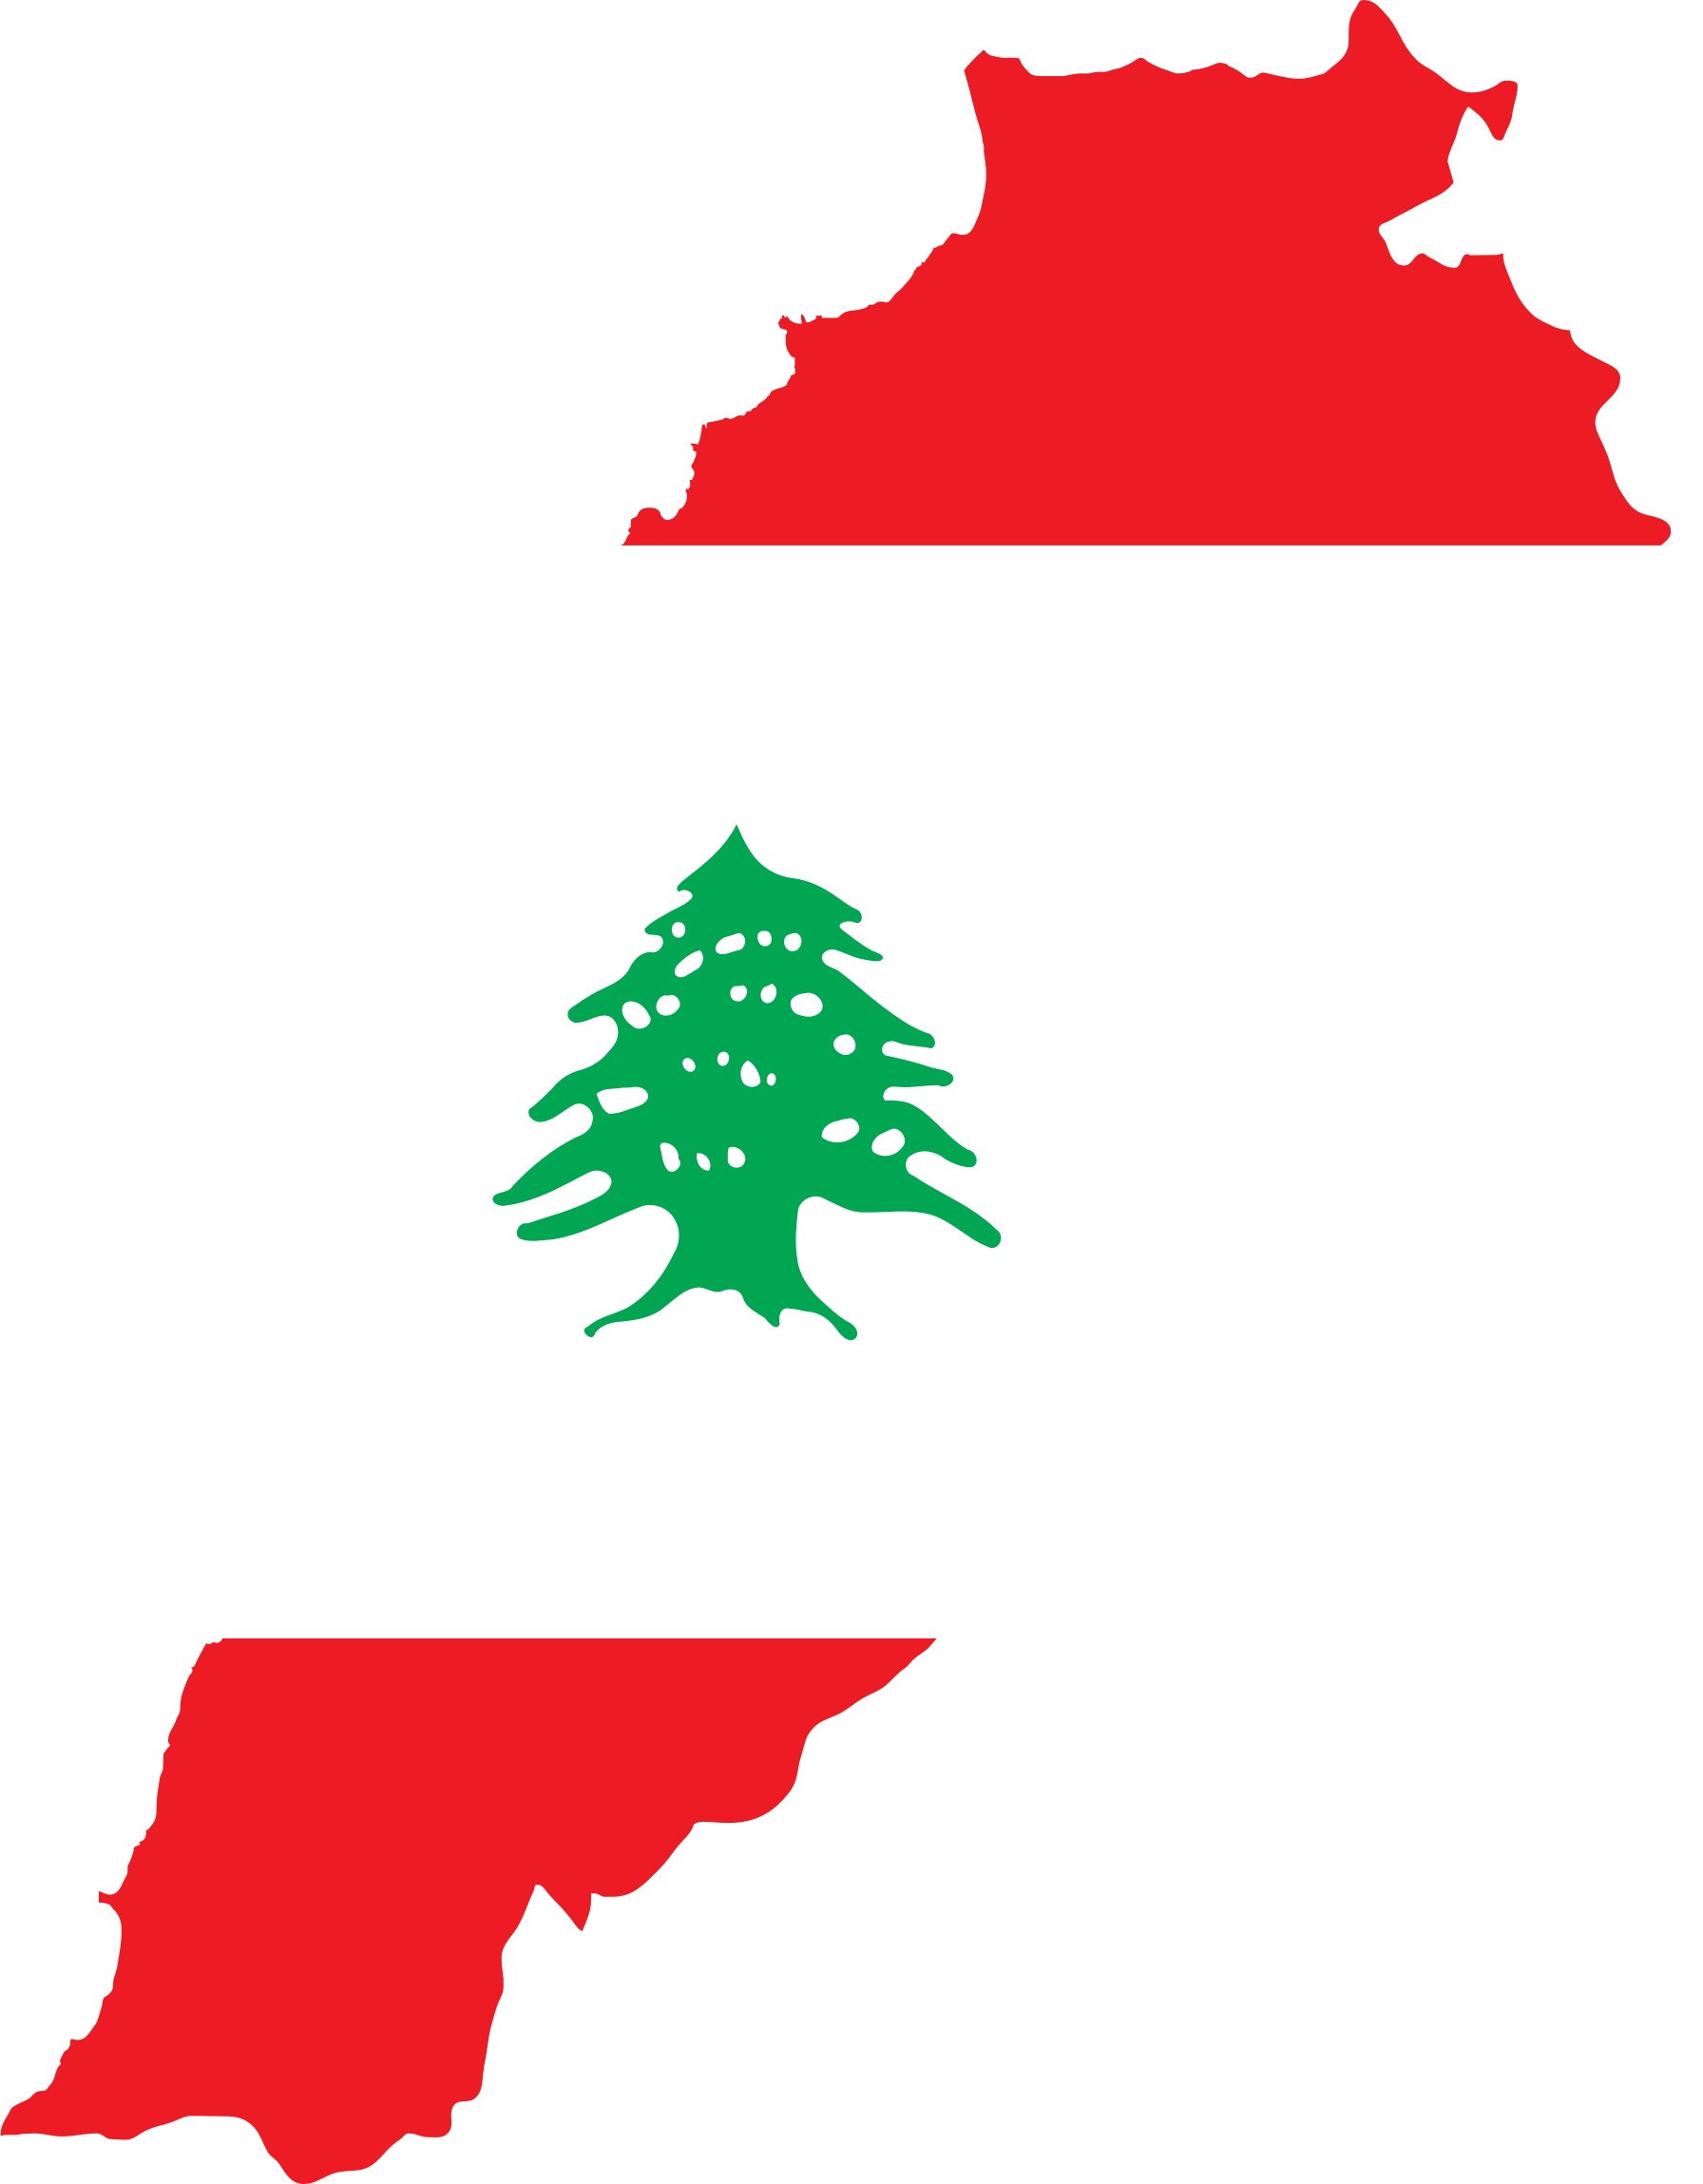 Clipart Lebanon Map Flag - Lebanon map